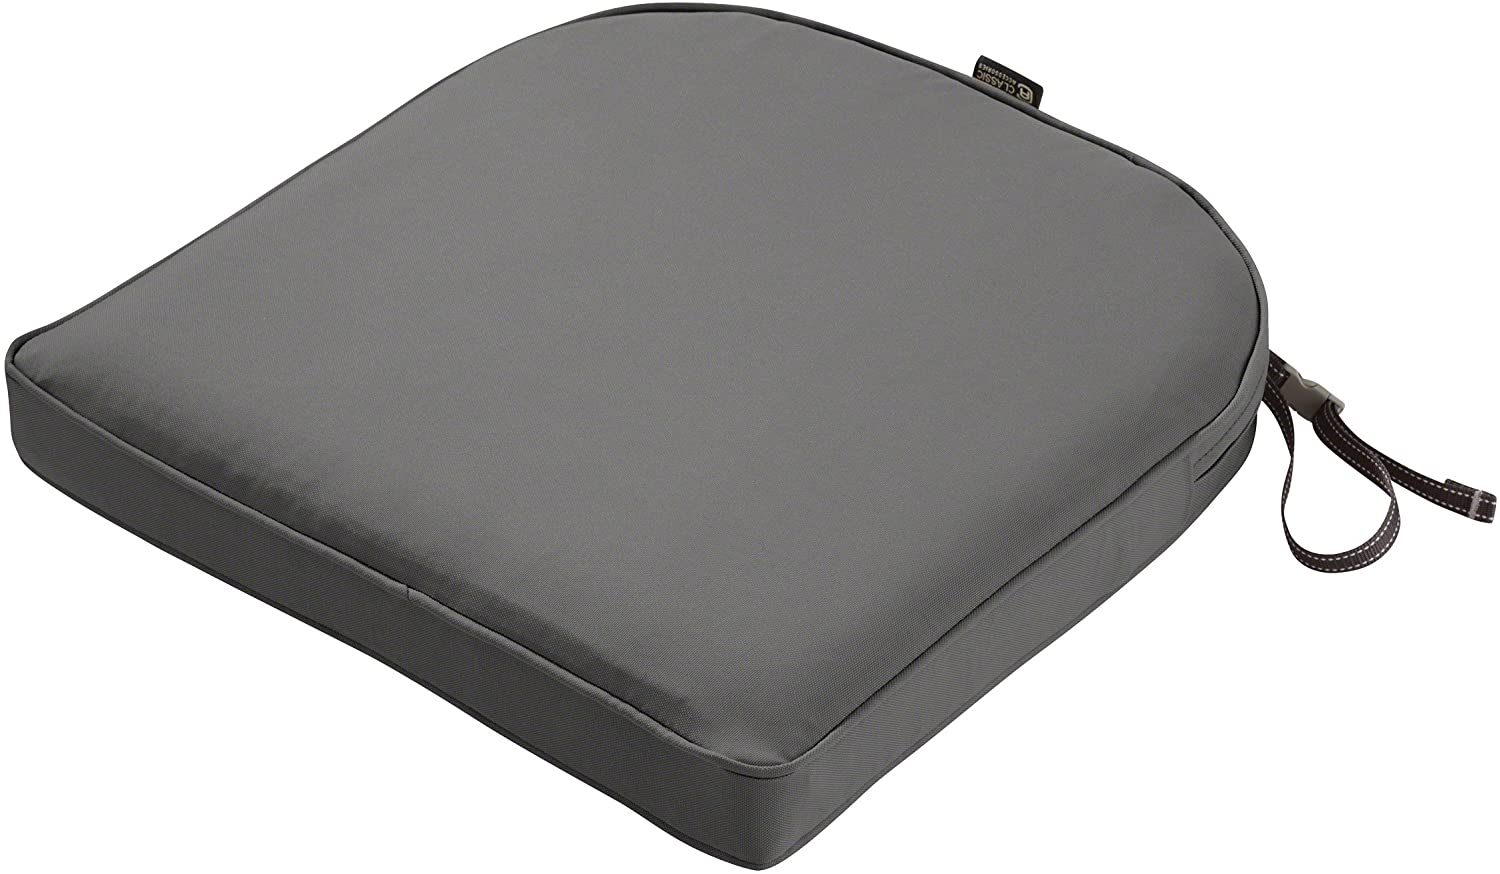 Classic Accessories Montlake Water-Resistant 18 x 18 x 2 Inch Contoured Patio Dining Seat Cushion, Light Charcoal Grey